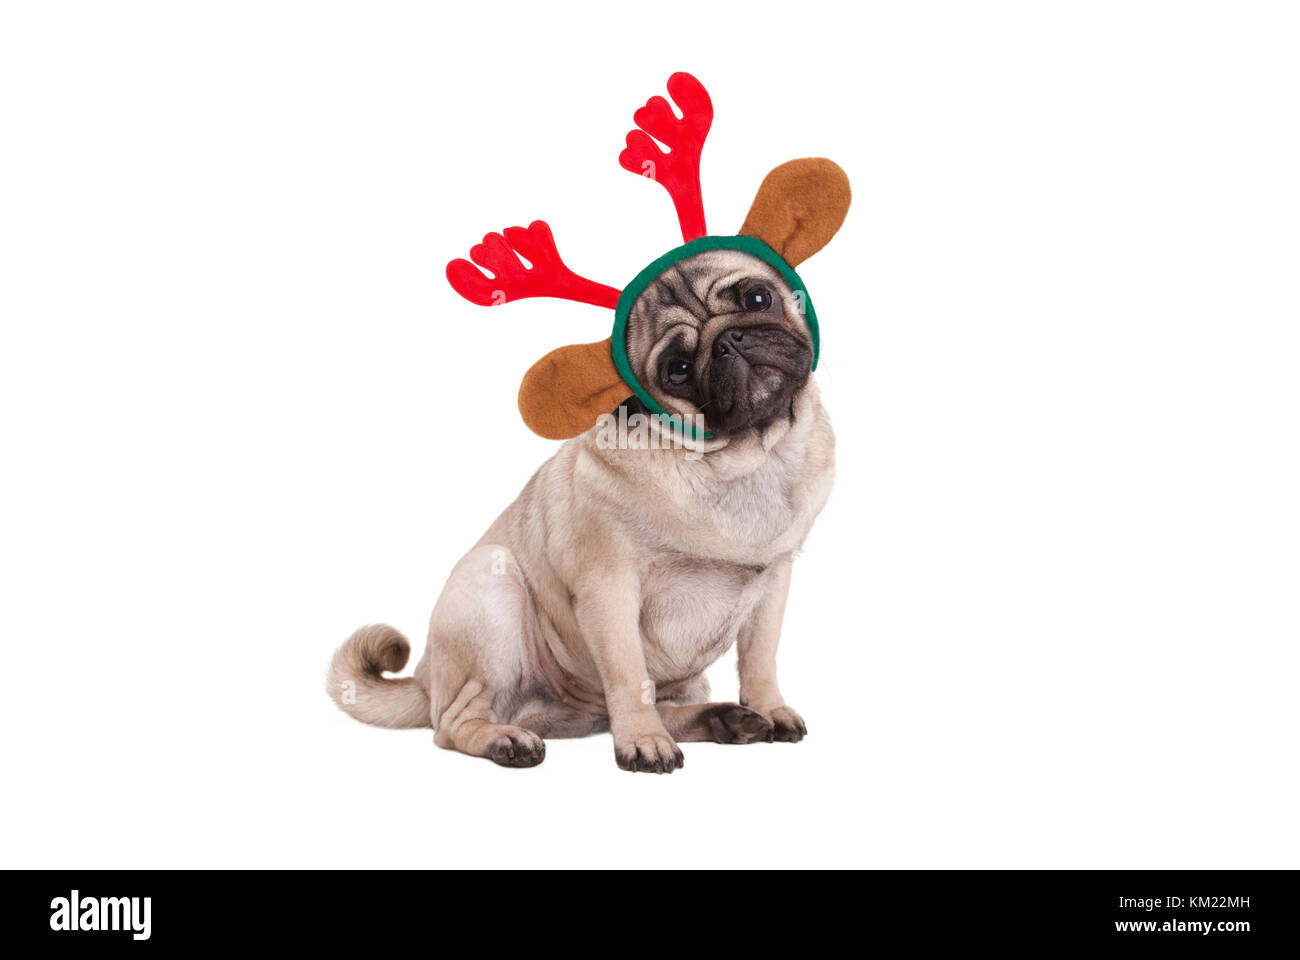 funny Christmas pug puppy dog sitting down, wearing reindeer antlers diadem, isolated on white background - Stock Image